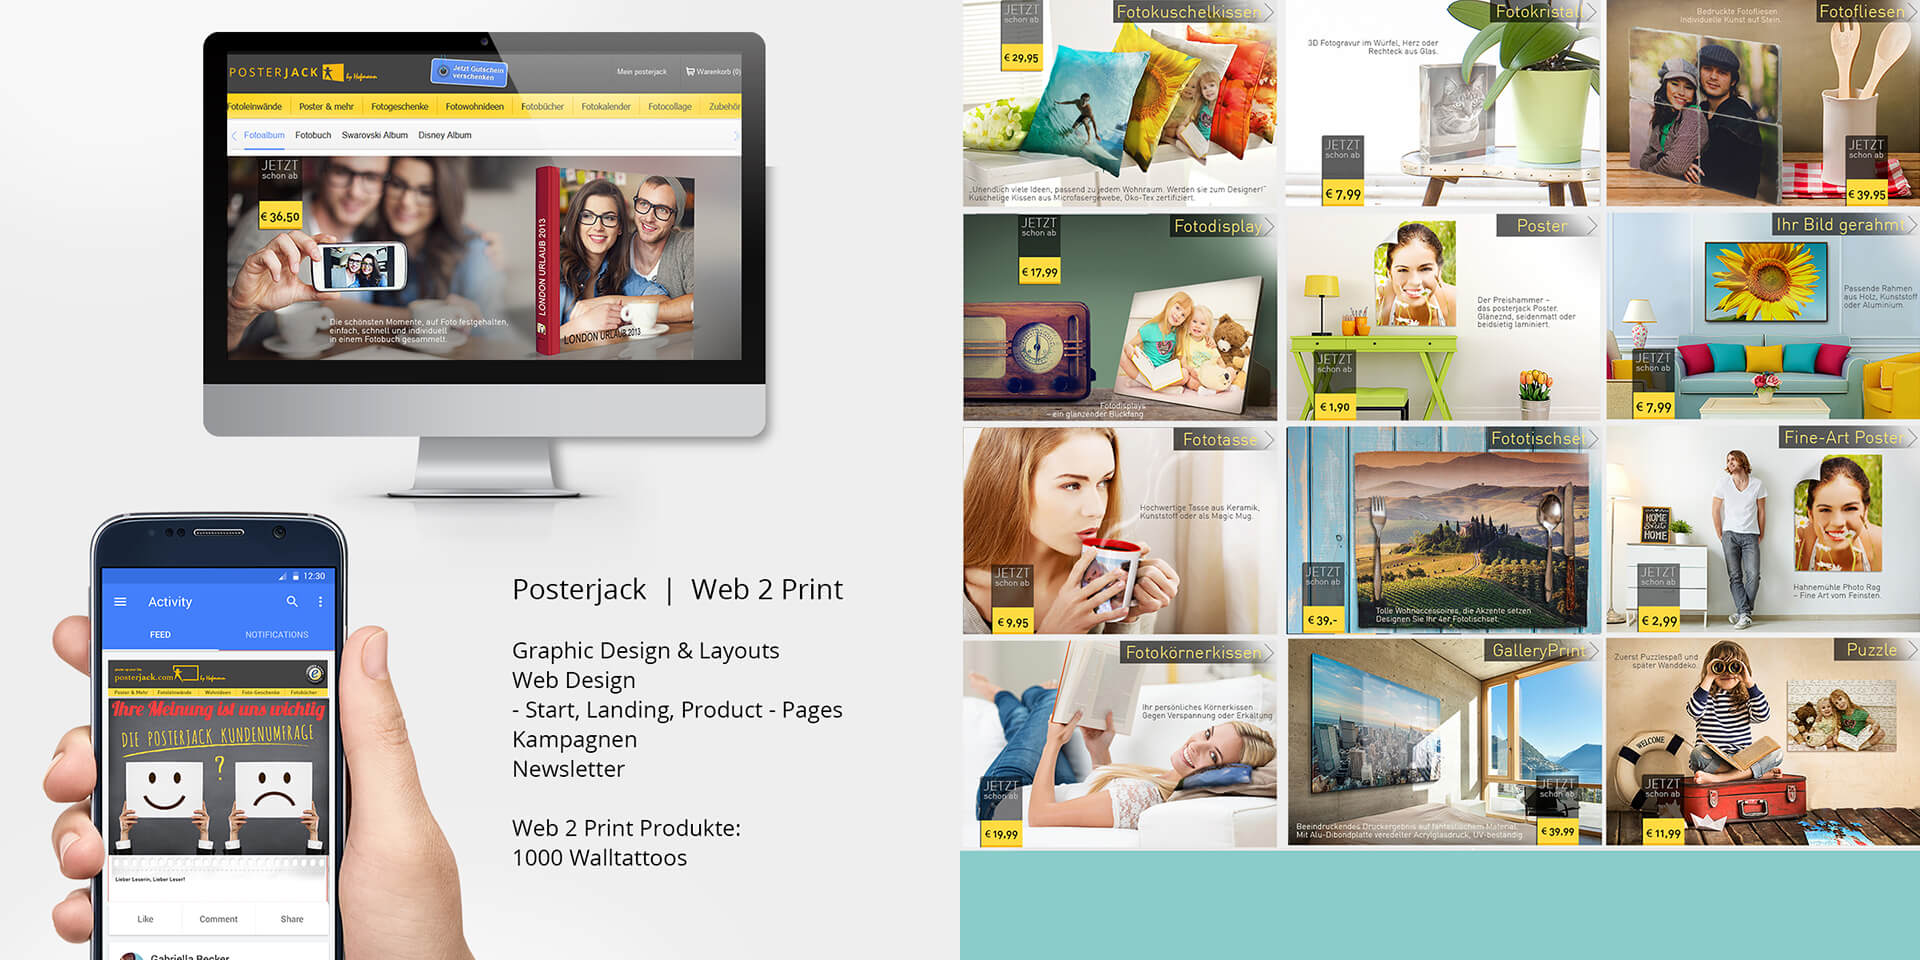 webdesign responsive seo sem online marketing wordpress html5 css newsletter banner 20